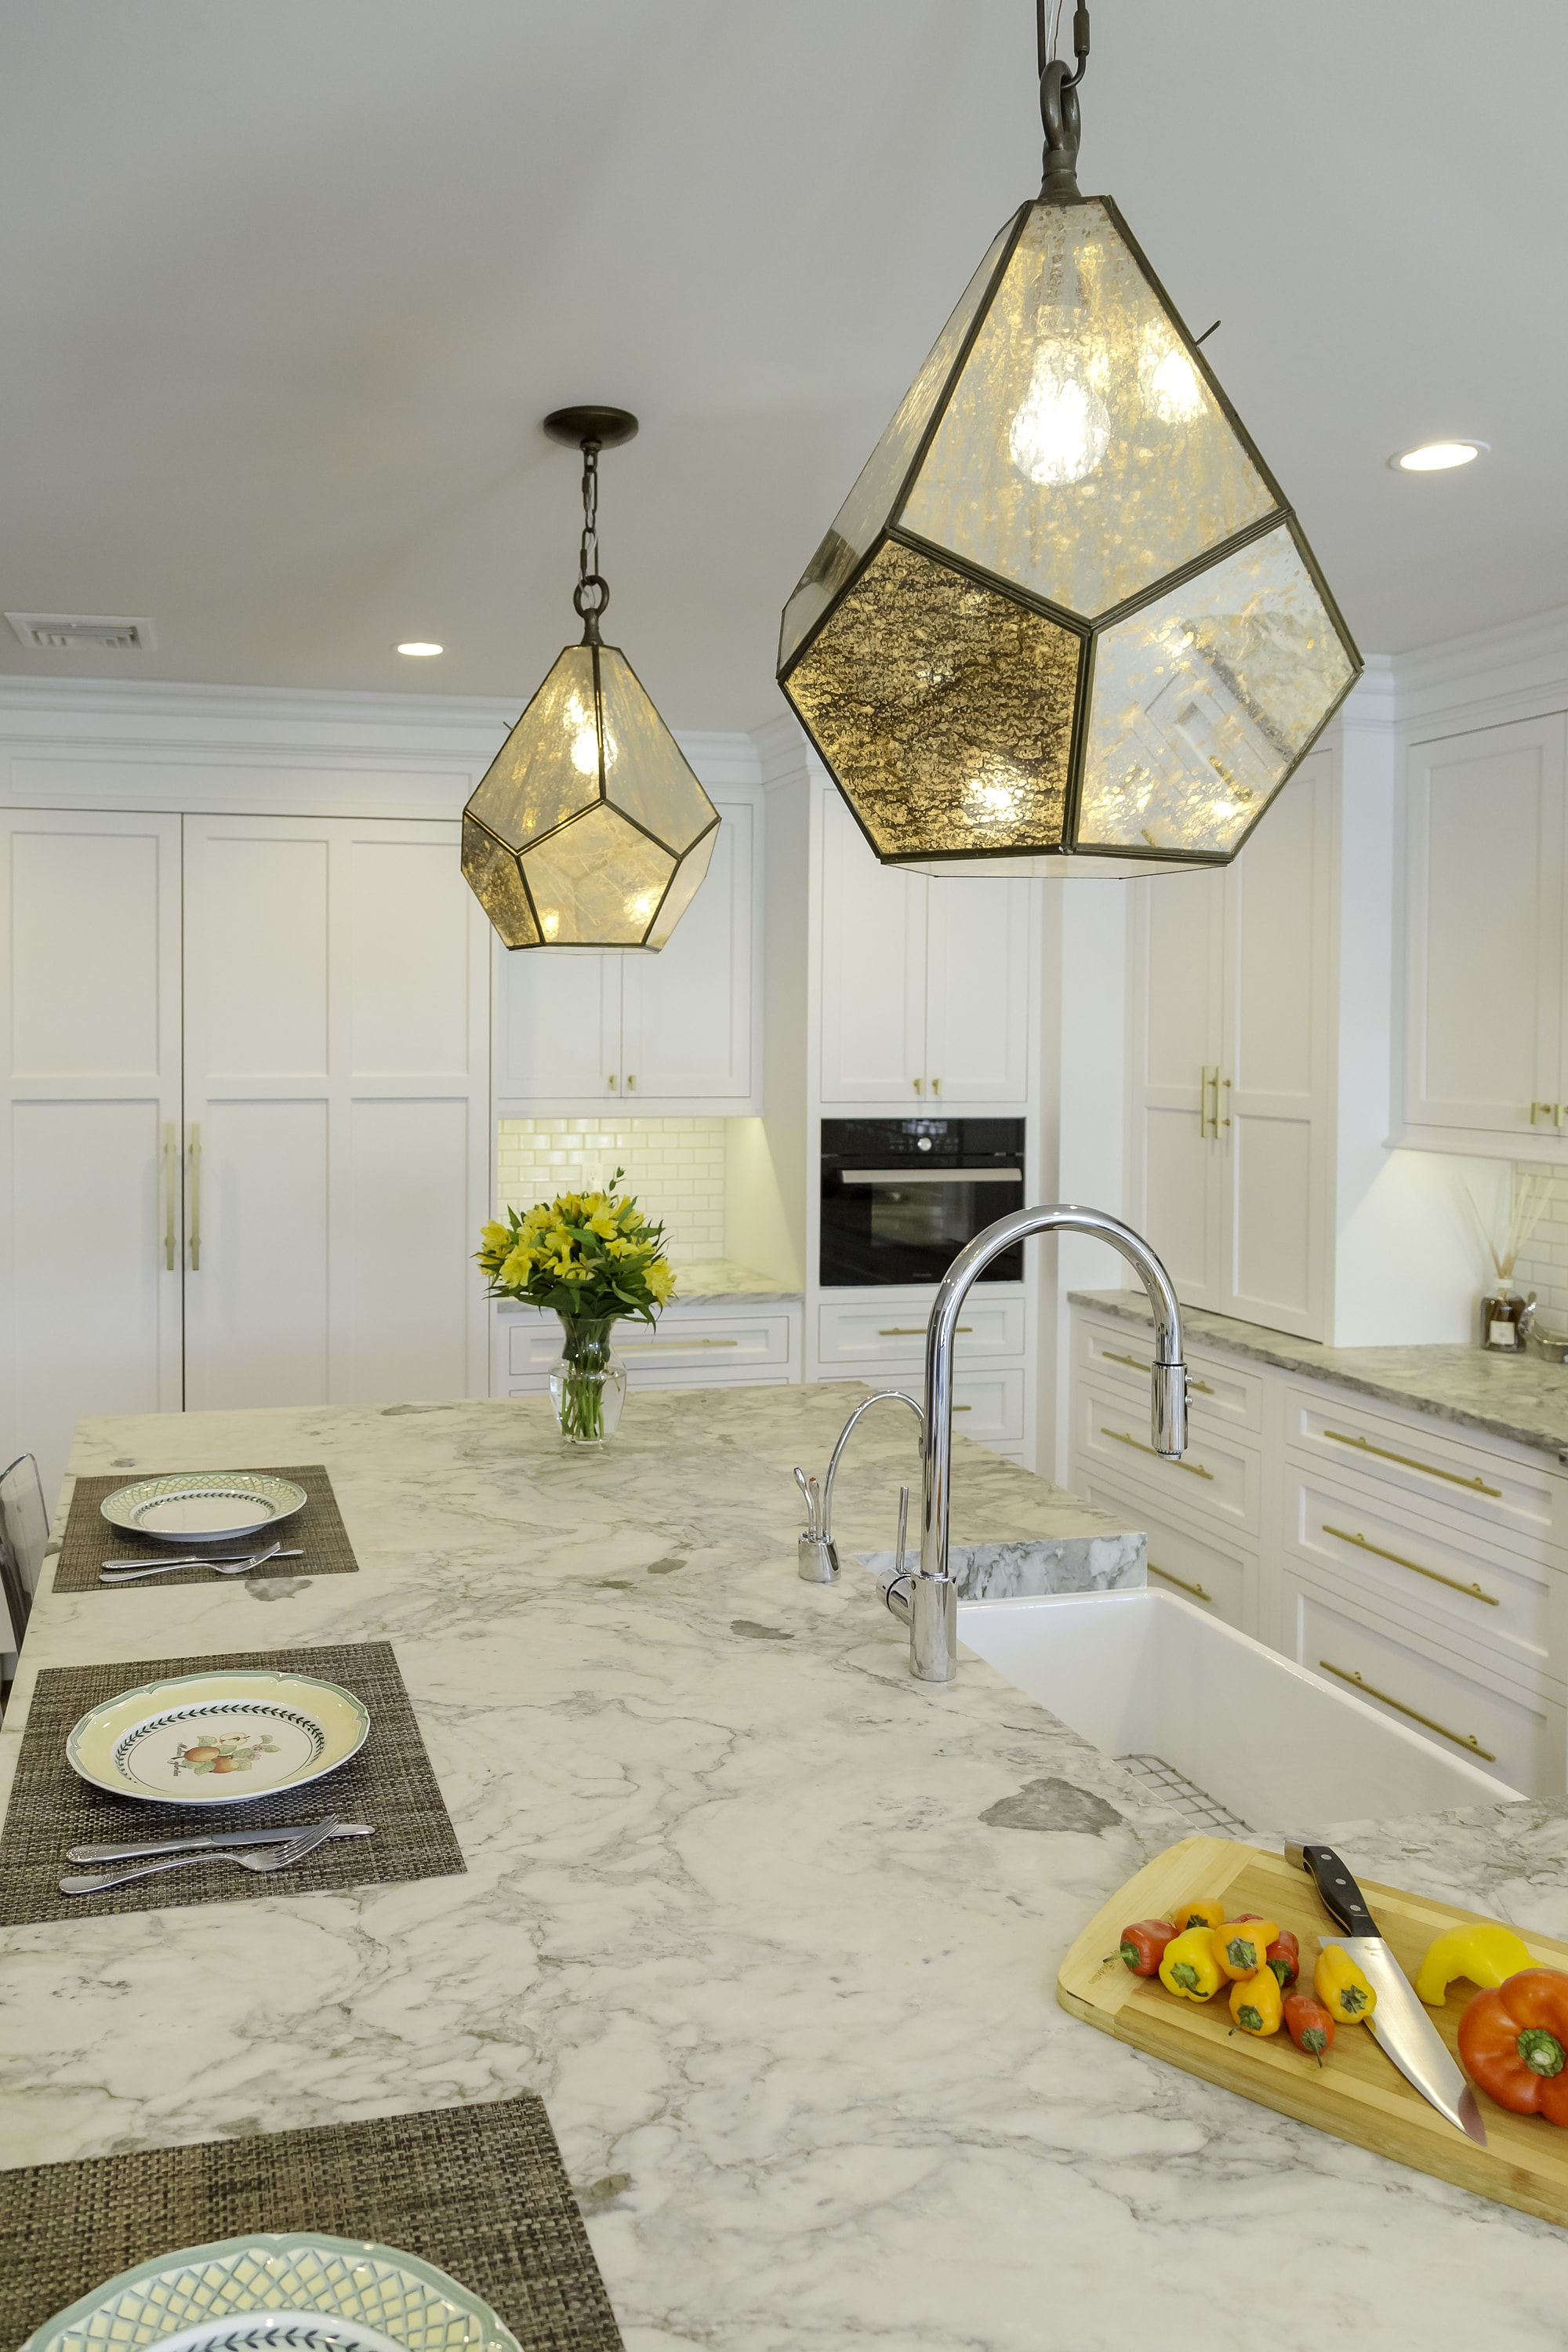 Transitional style kitchen with warm and cozy lighting